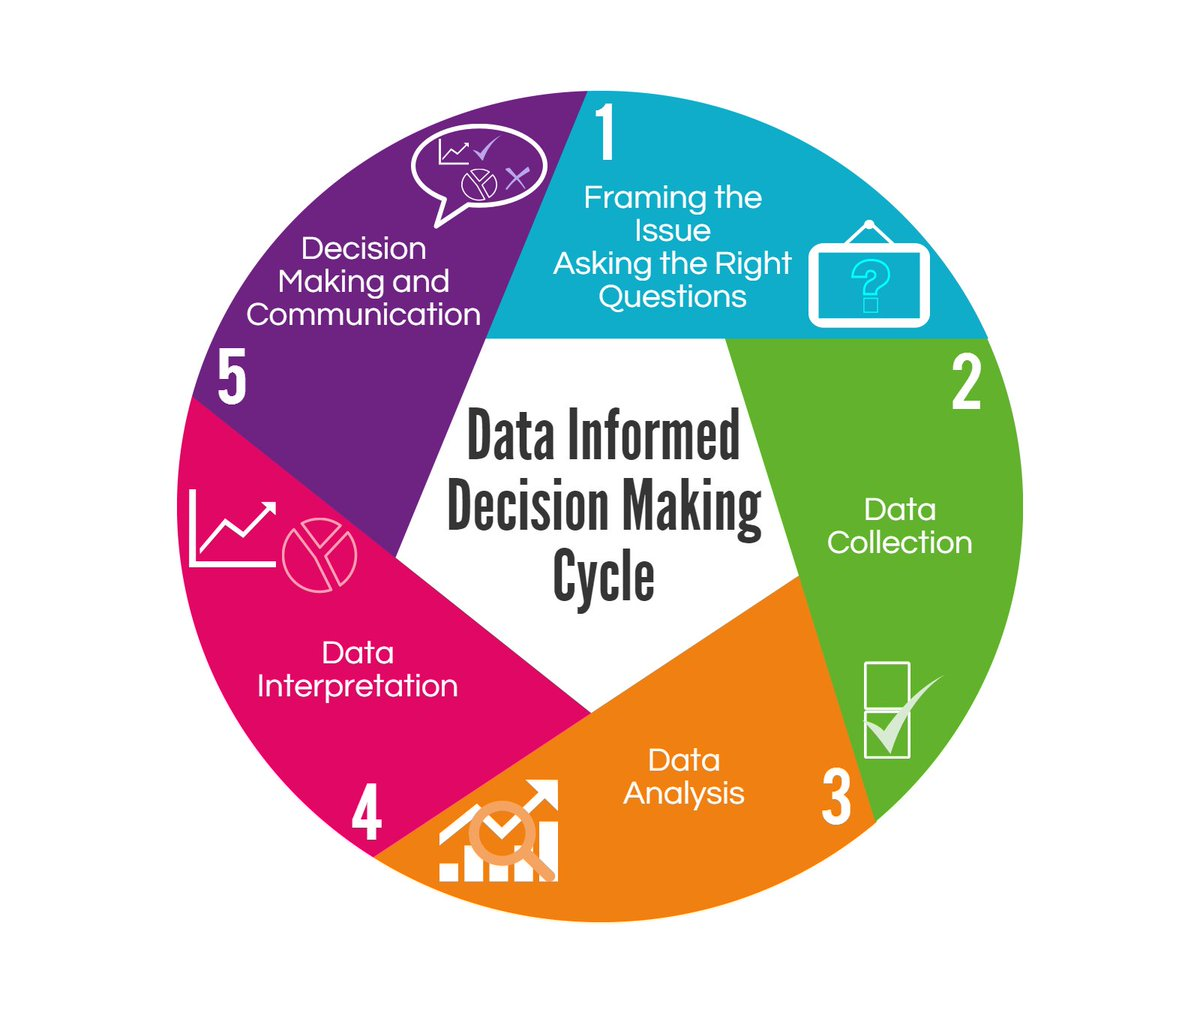 Informed decision making cycle